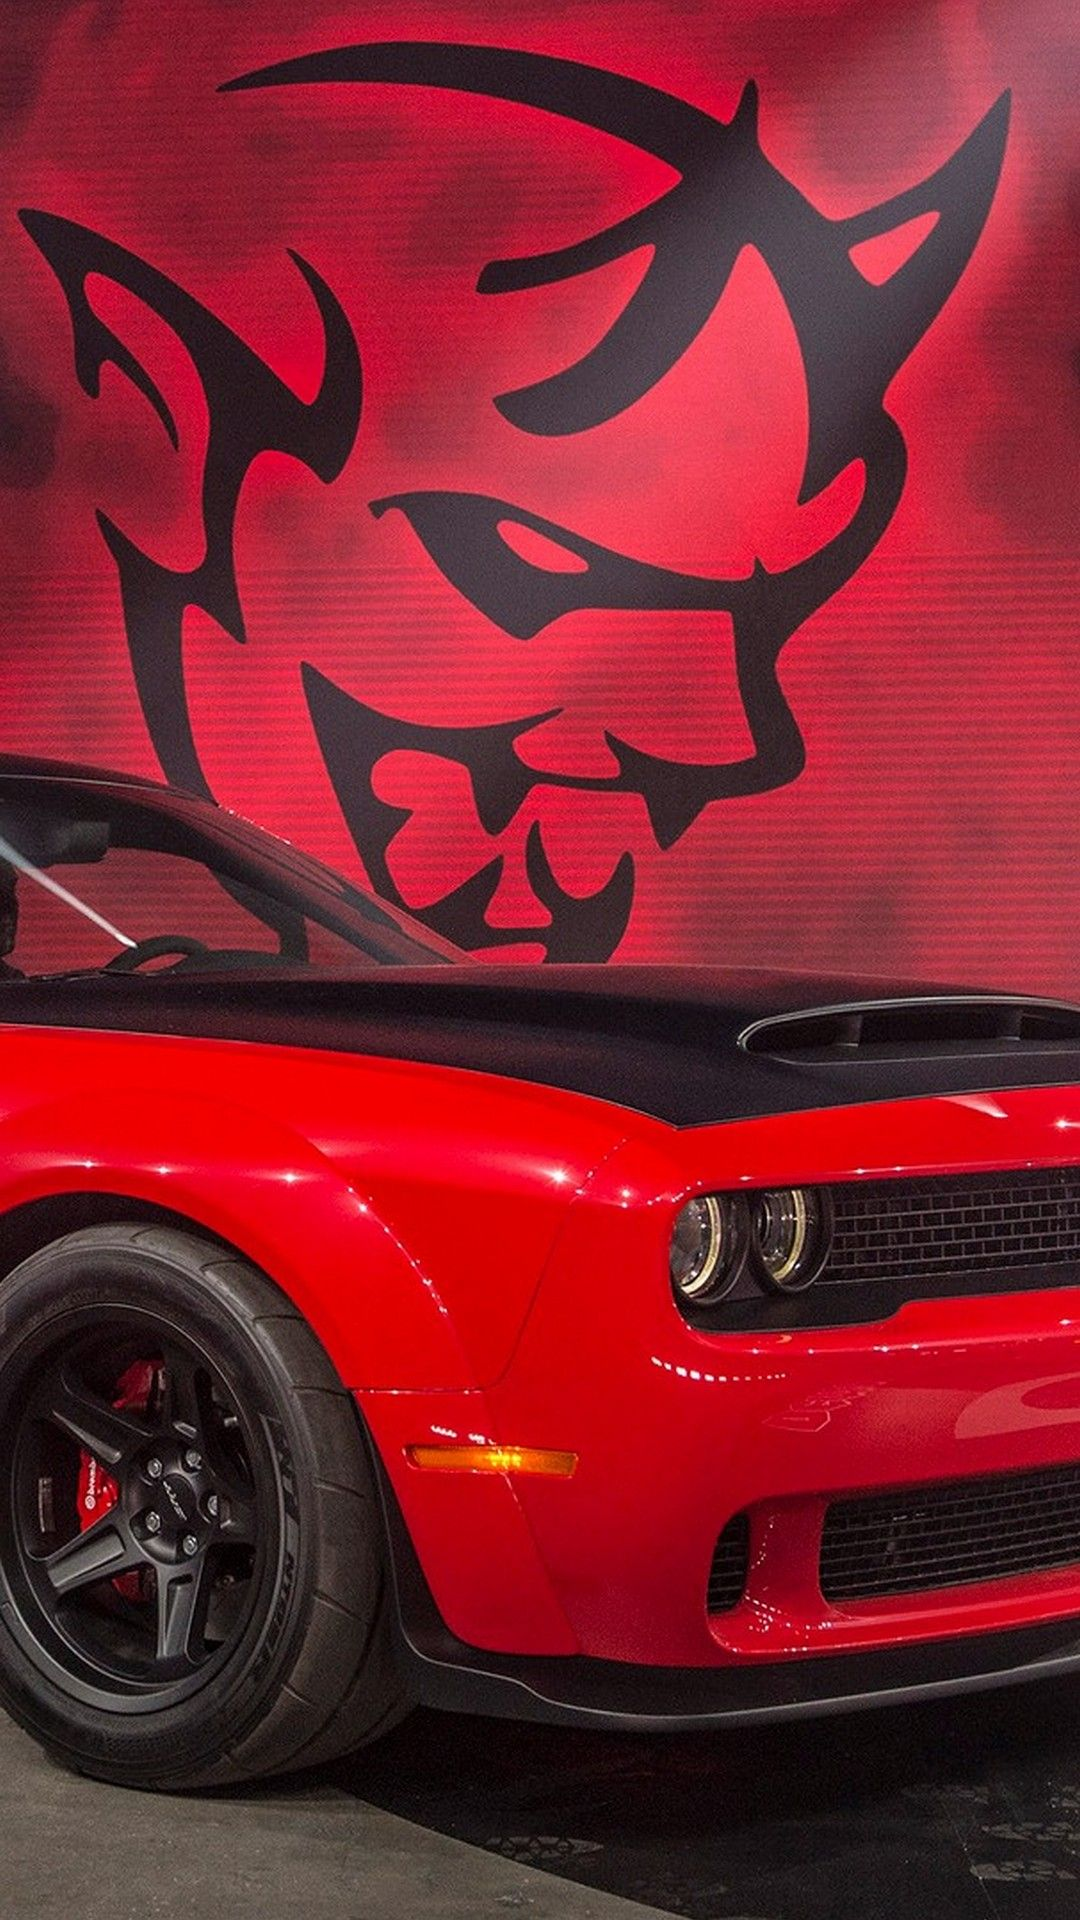 2018 Dodge Demon iPhone Wallpaper Best iPhone Wallpaper